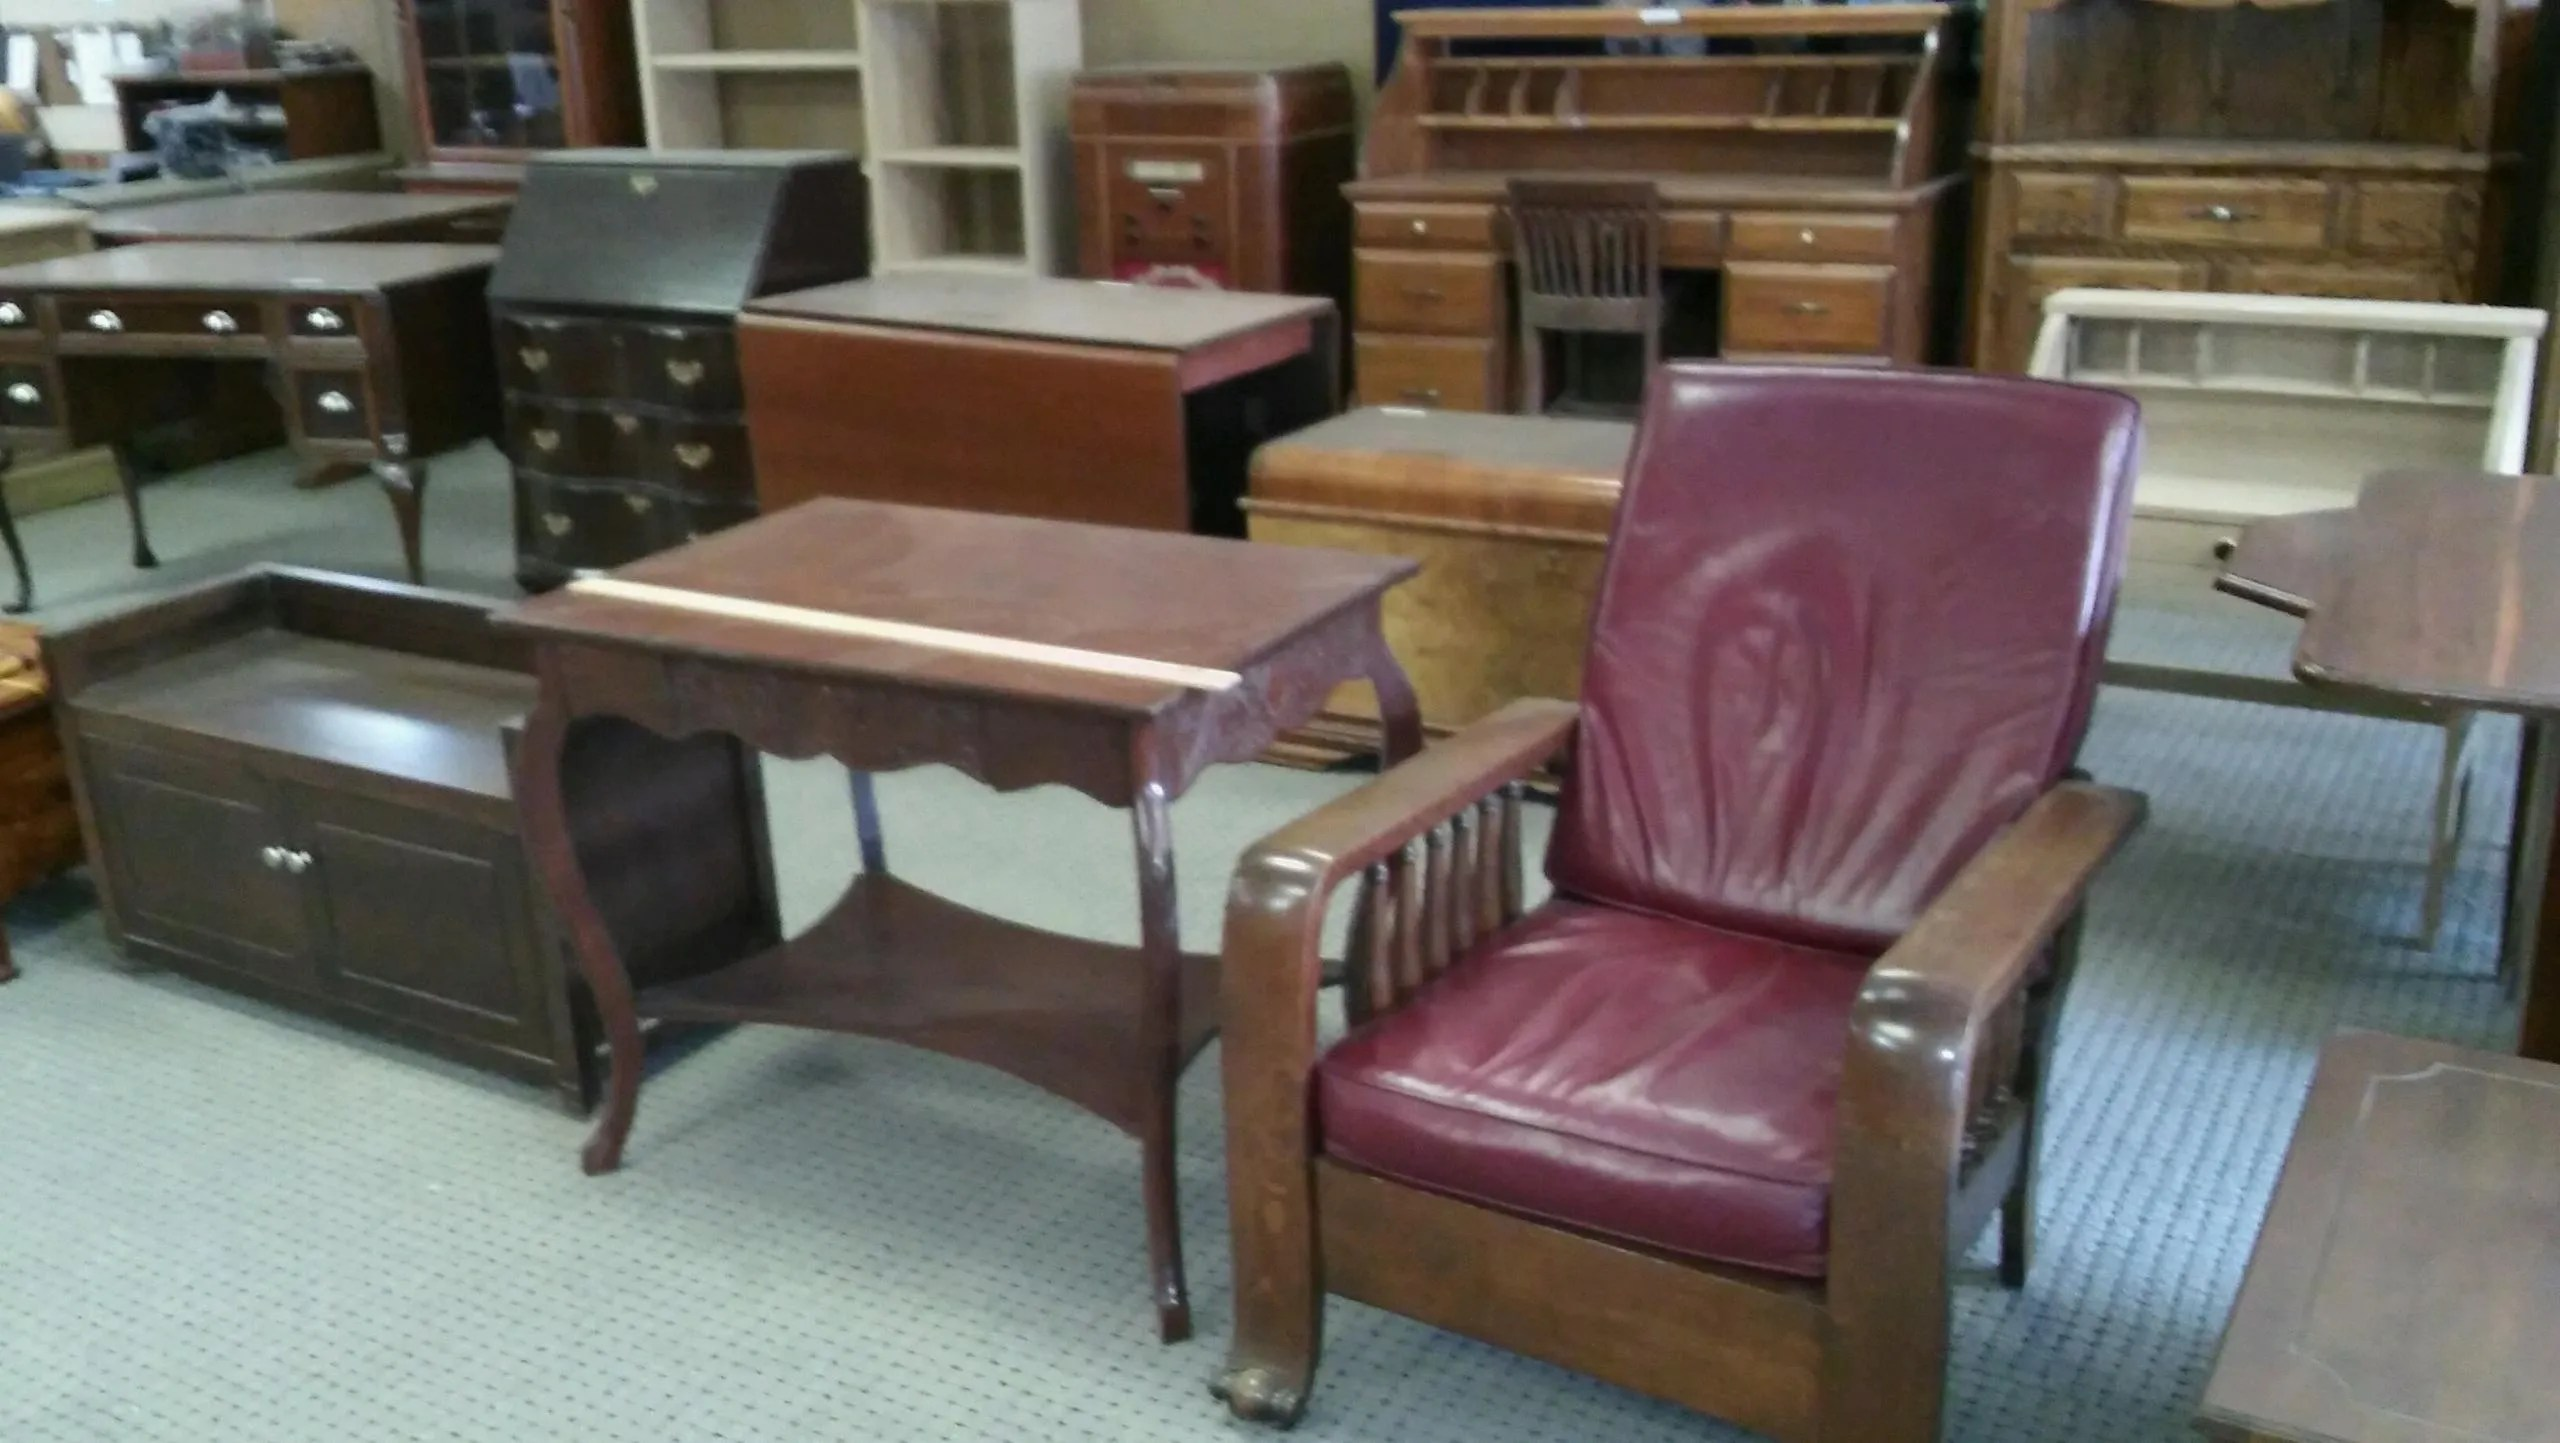 Furniture Stripping Services Provided Near Greece Ny Allnaturalwoodstore Com